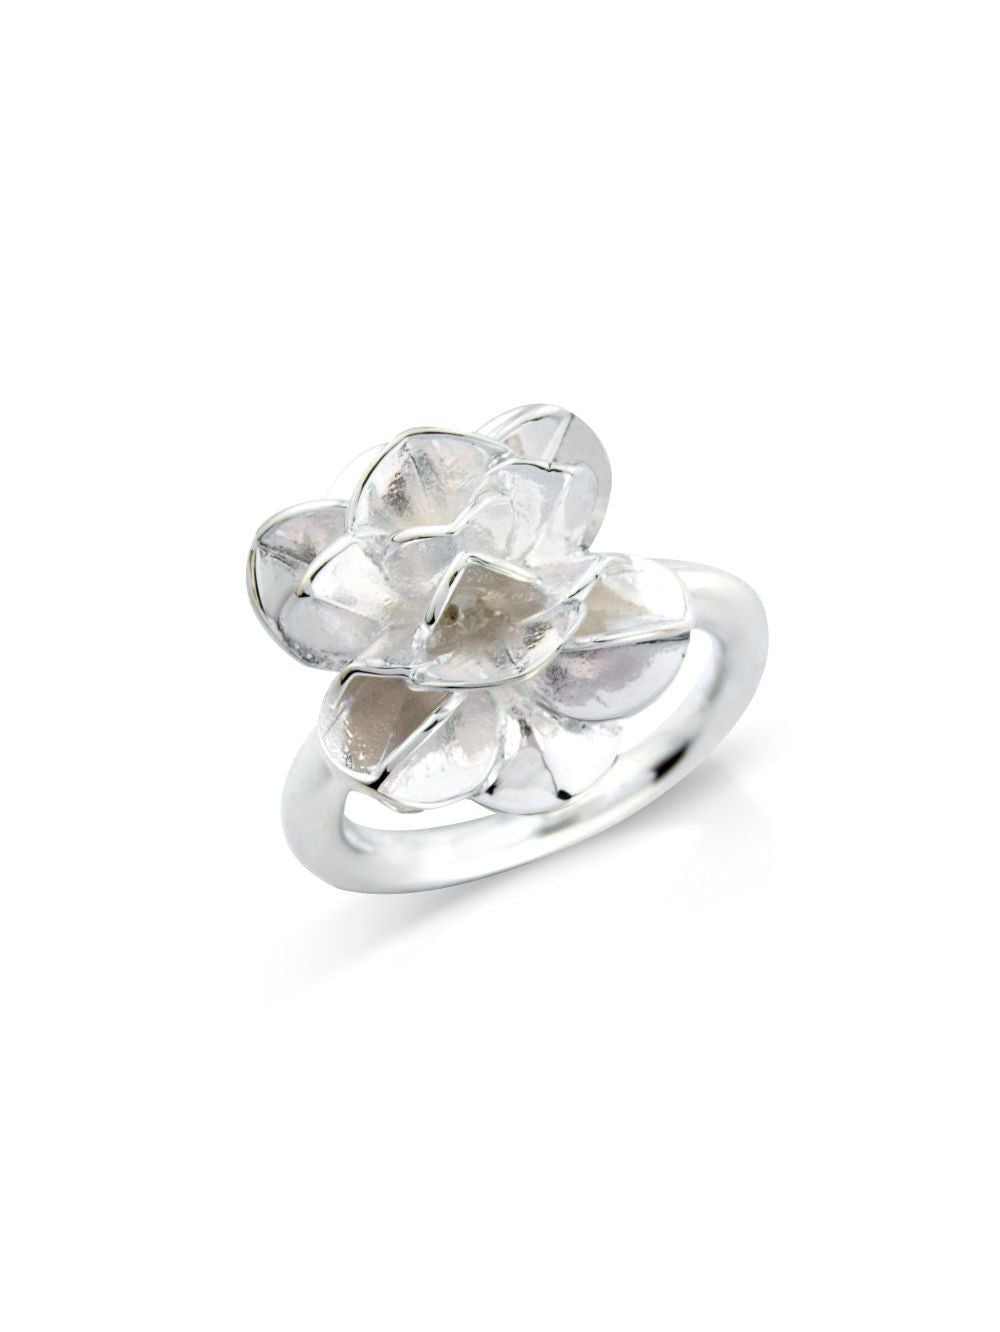 Statement Silver Ring - Contemporary European Jewellers